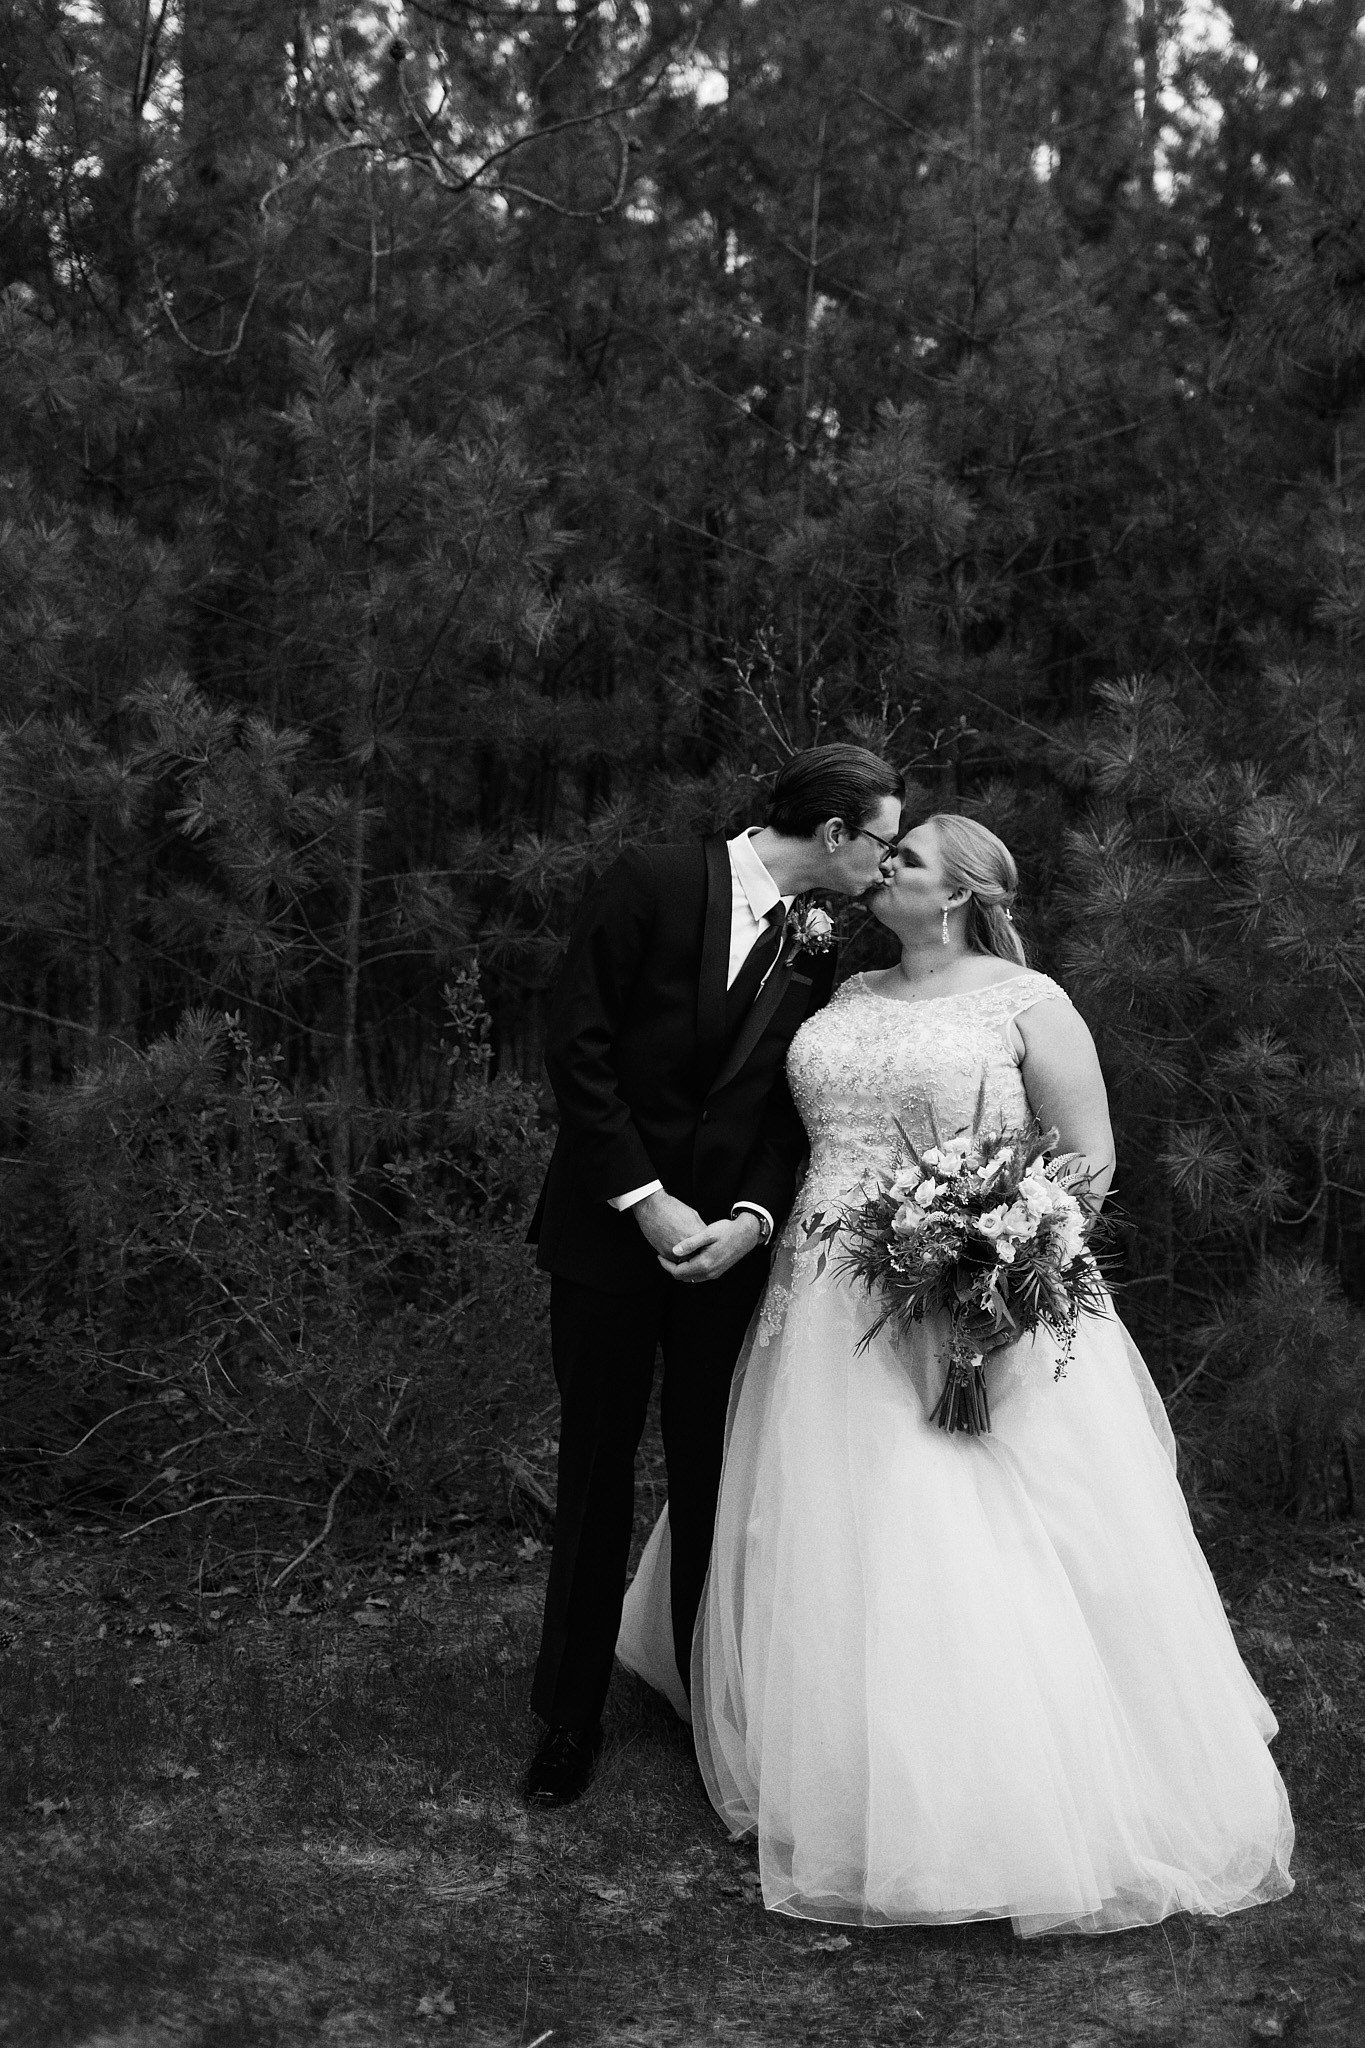 Original_Black_And_White_Photo_At_Wedding_Photography_High_End_Minneapolis_Brand_Photographer_Something_Candid_037.JPG